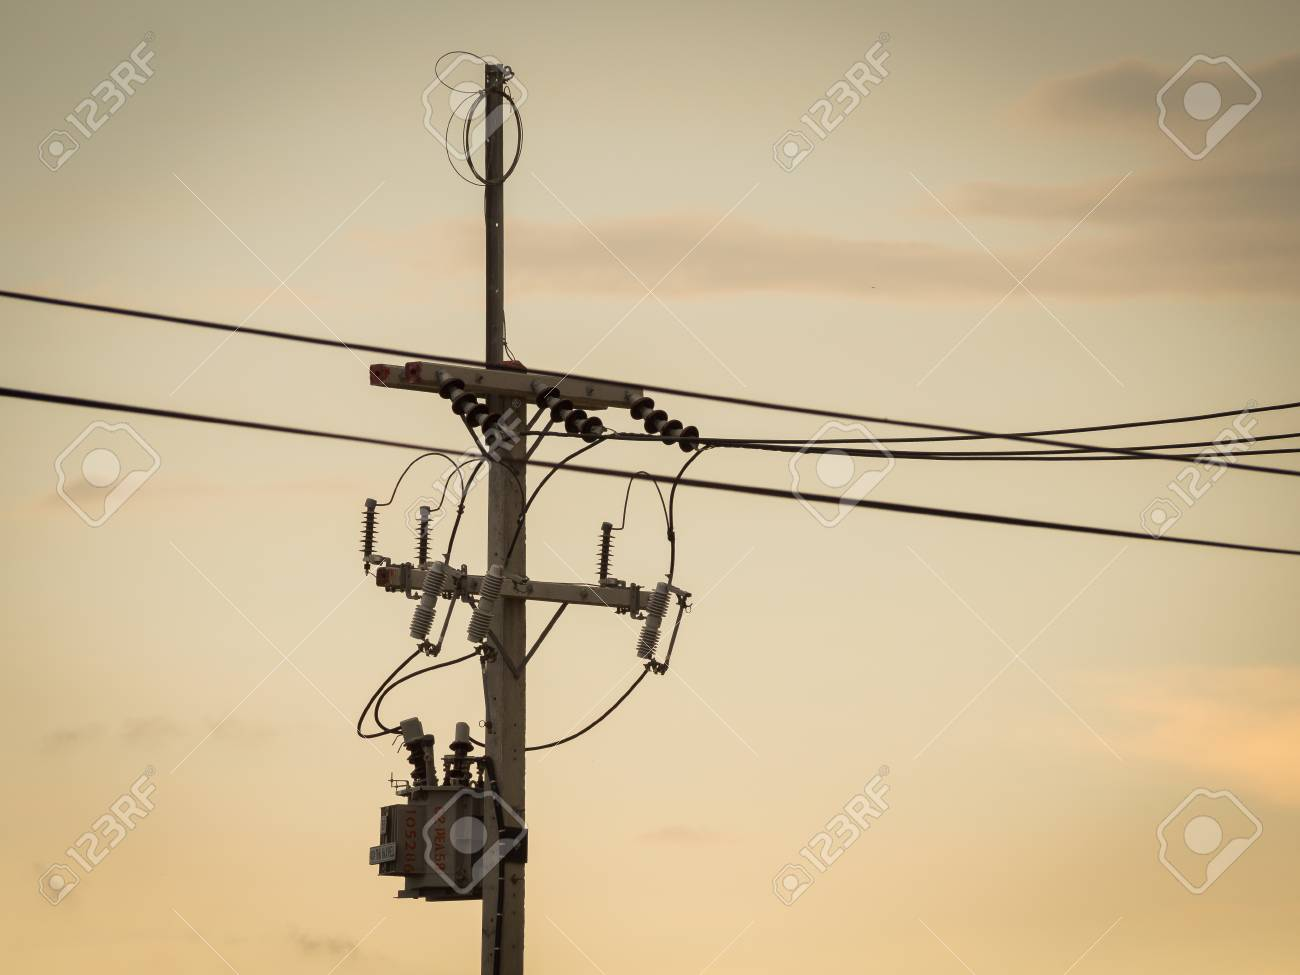 Electric Pole : Electrical Power Poles In The Electricity Needed ...